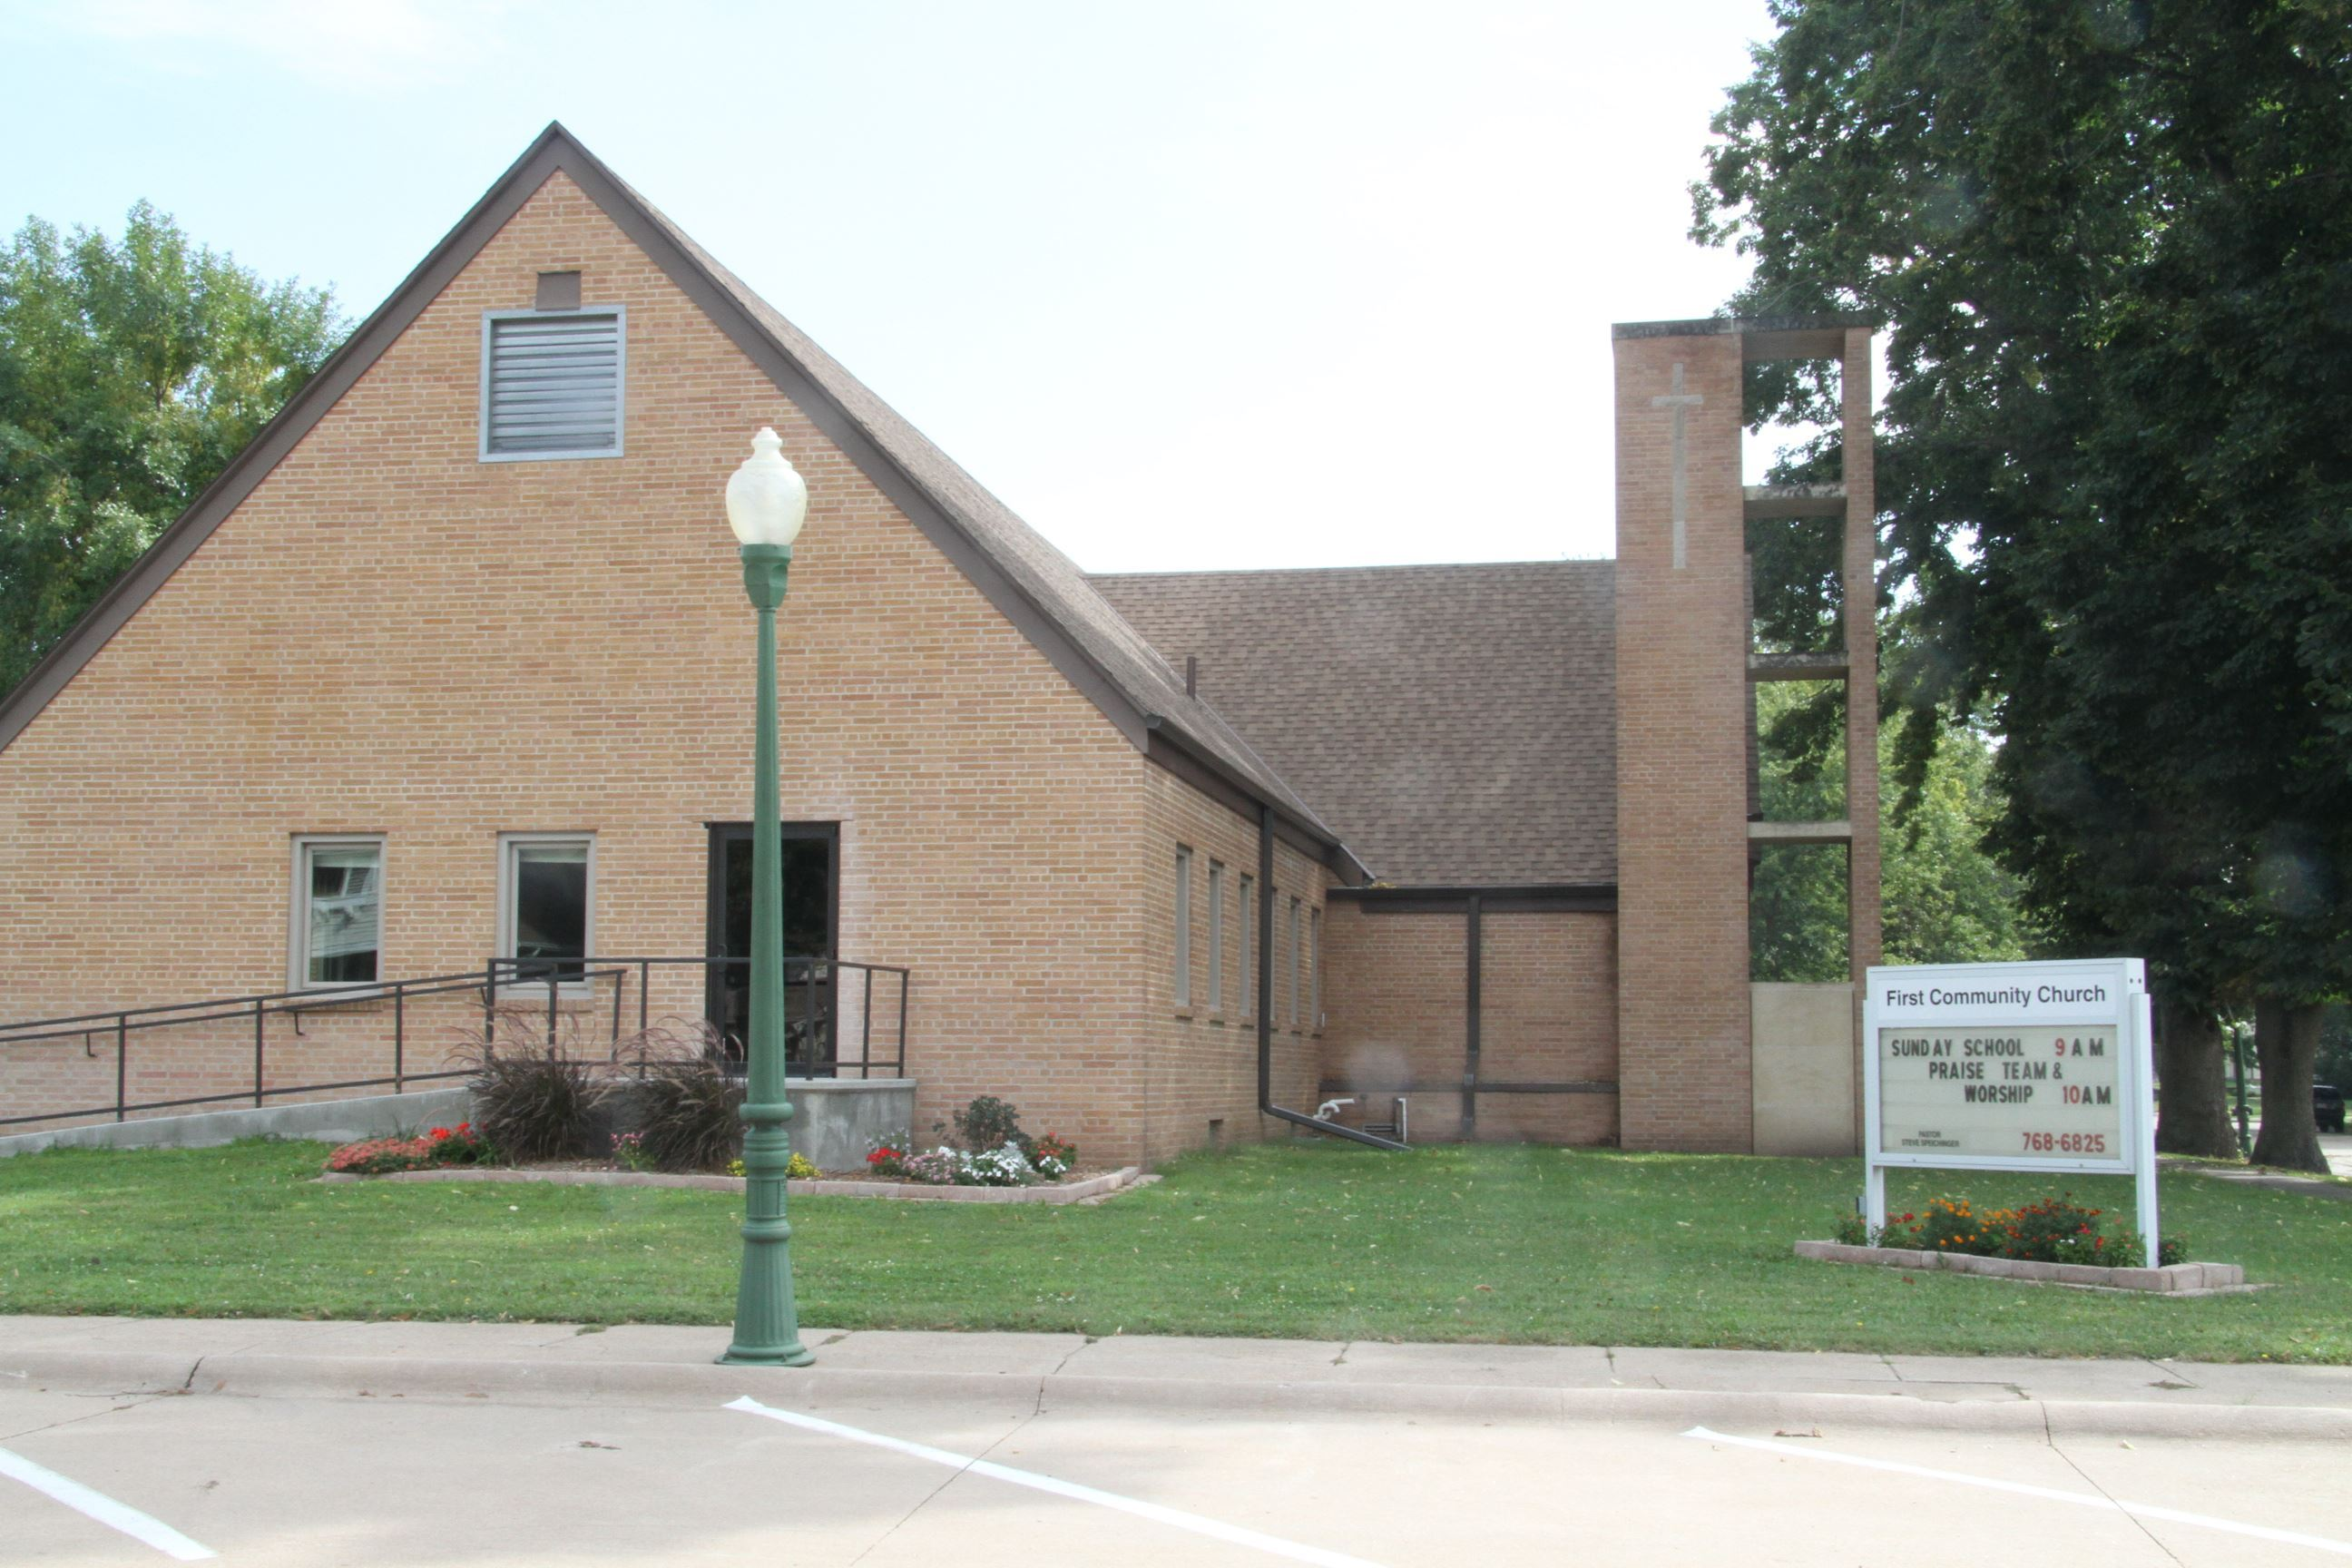 The front of the First Community Church Building